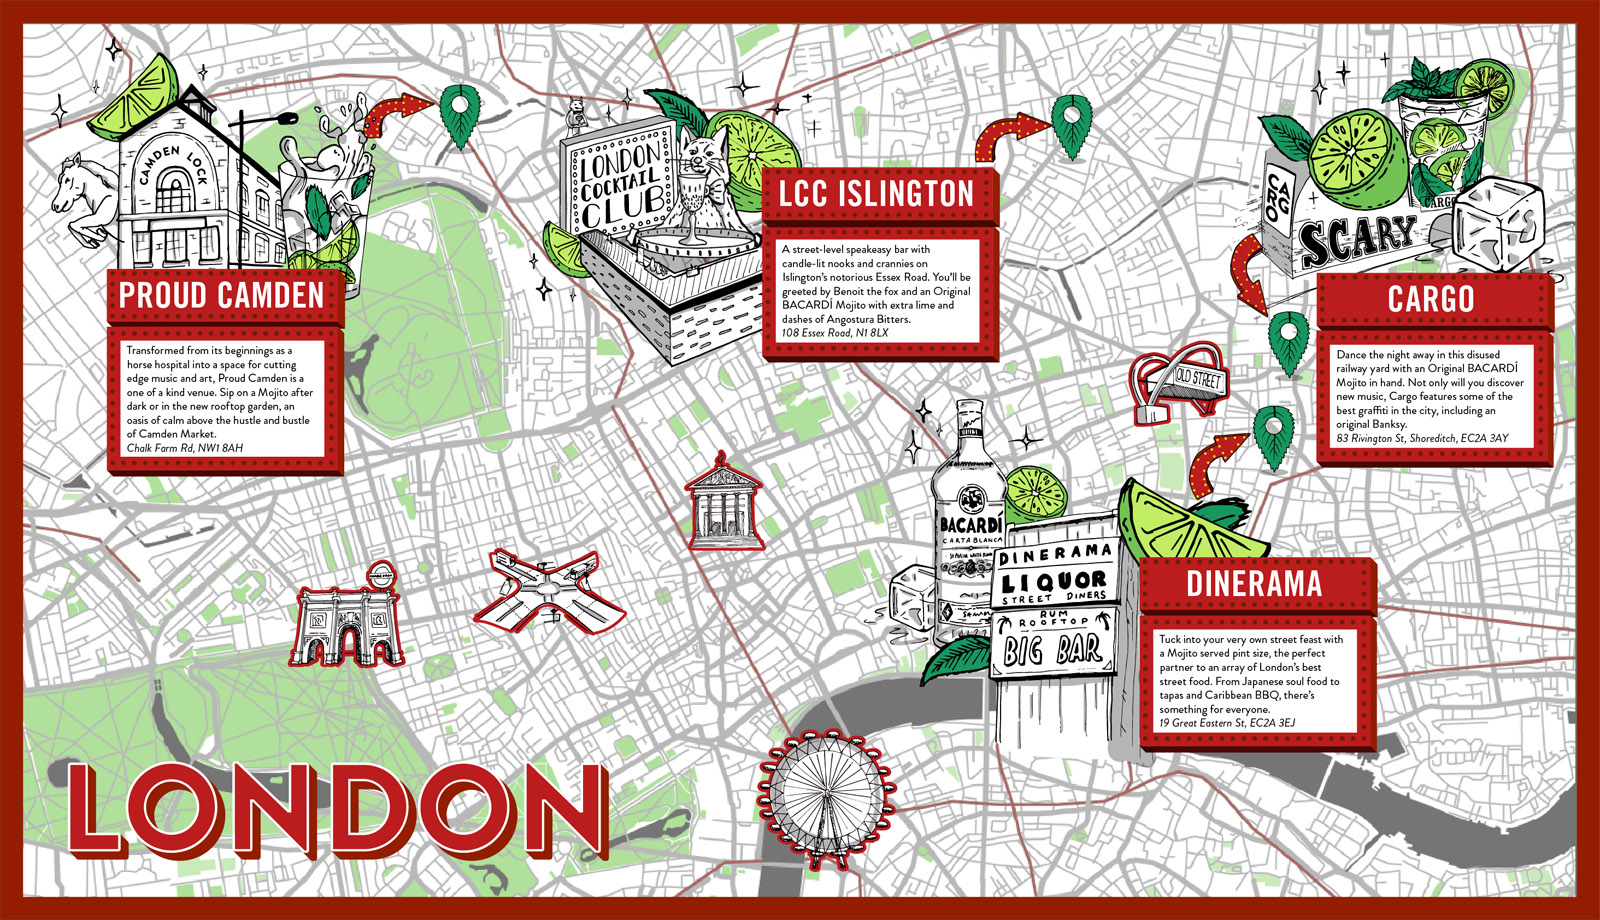 London Bacardi Map for best mojito's